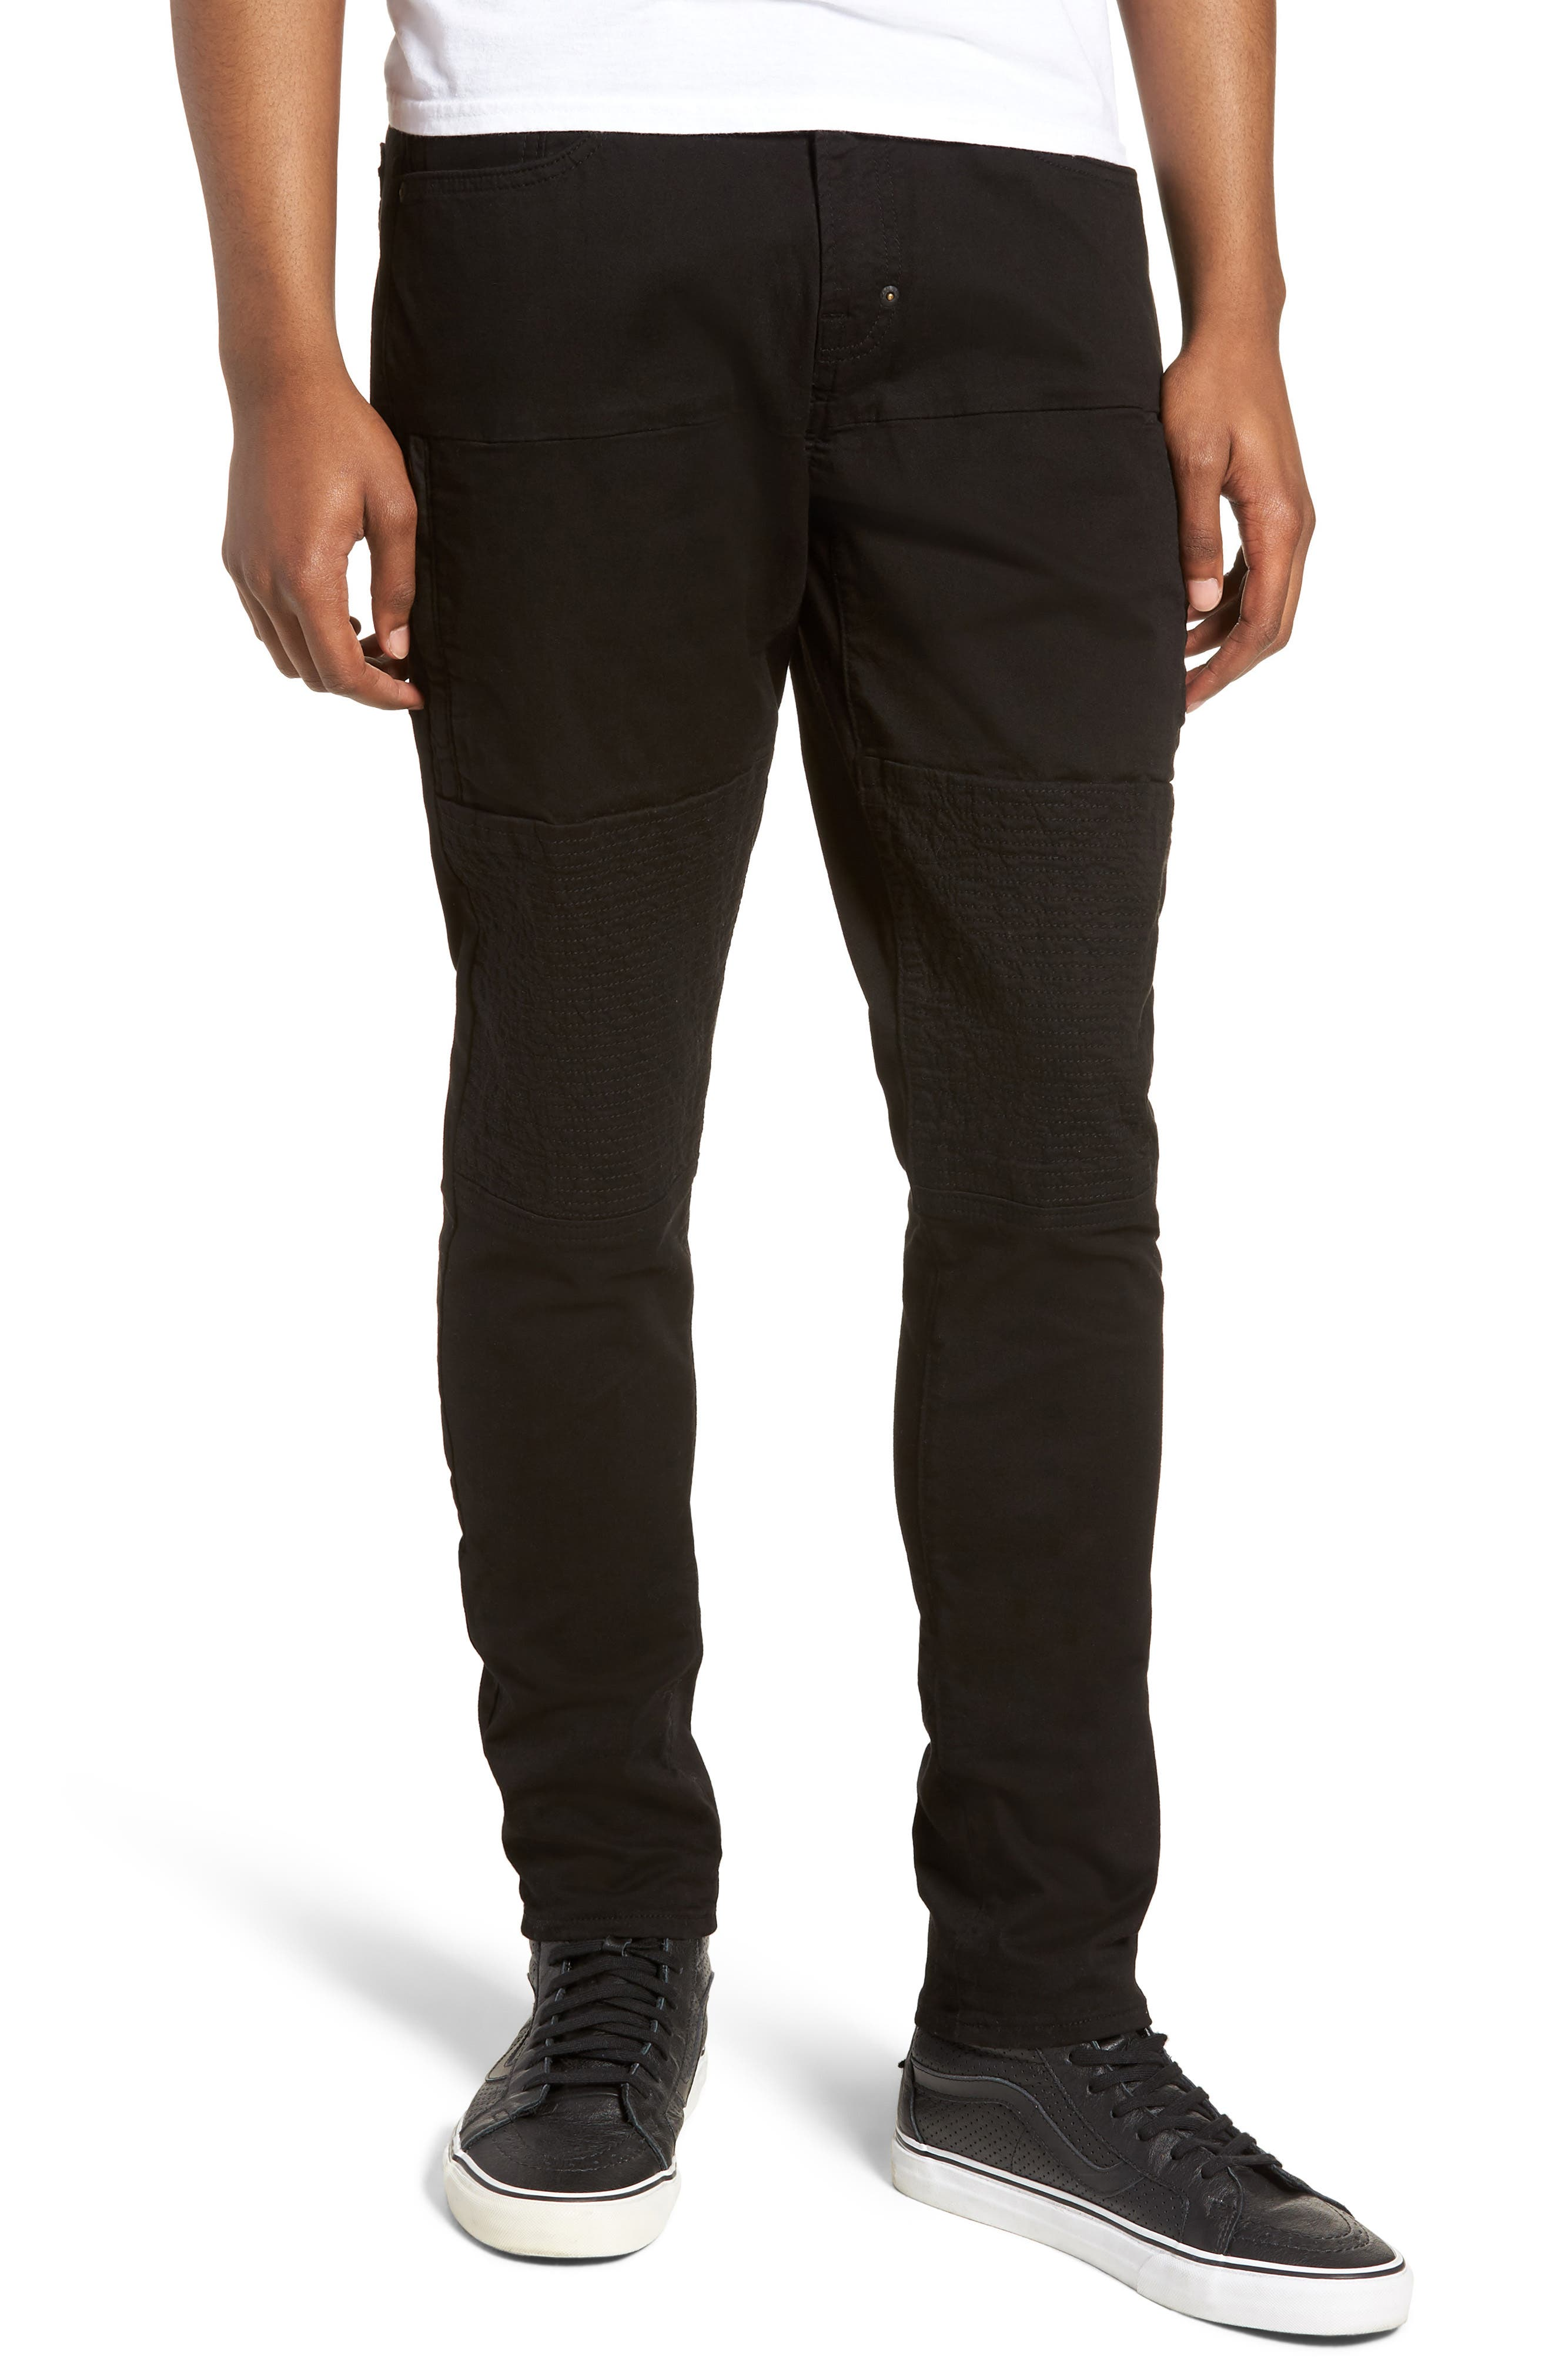 Le Sabre Slim Fit Jeans,                             Main thumbnail 1, color,                             Black